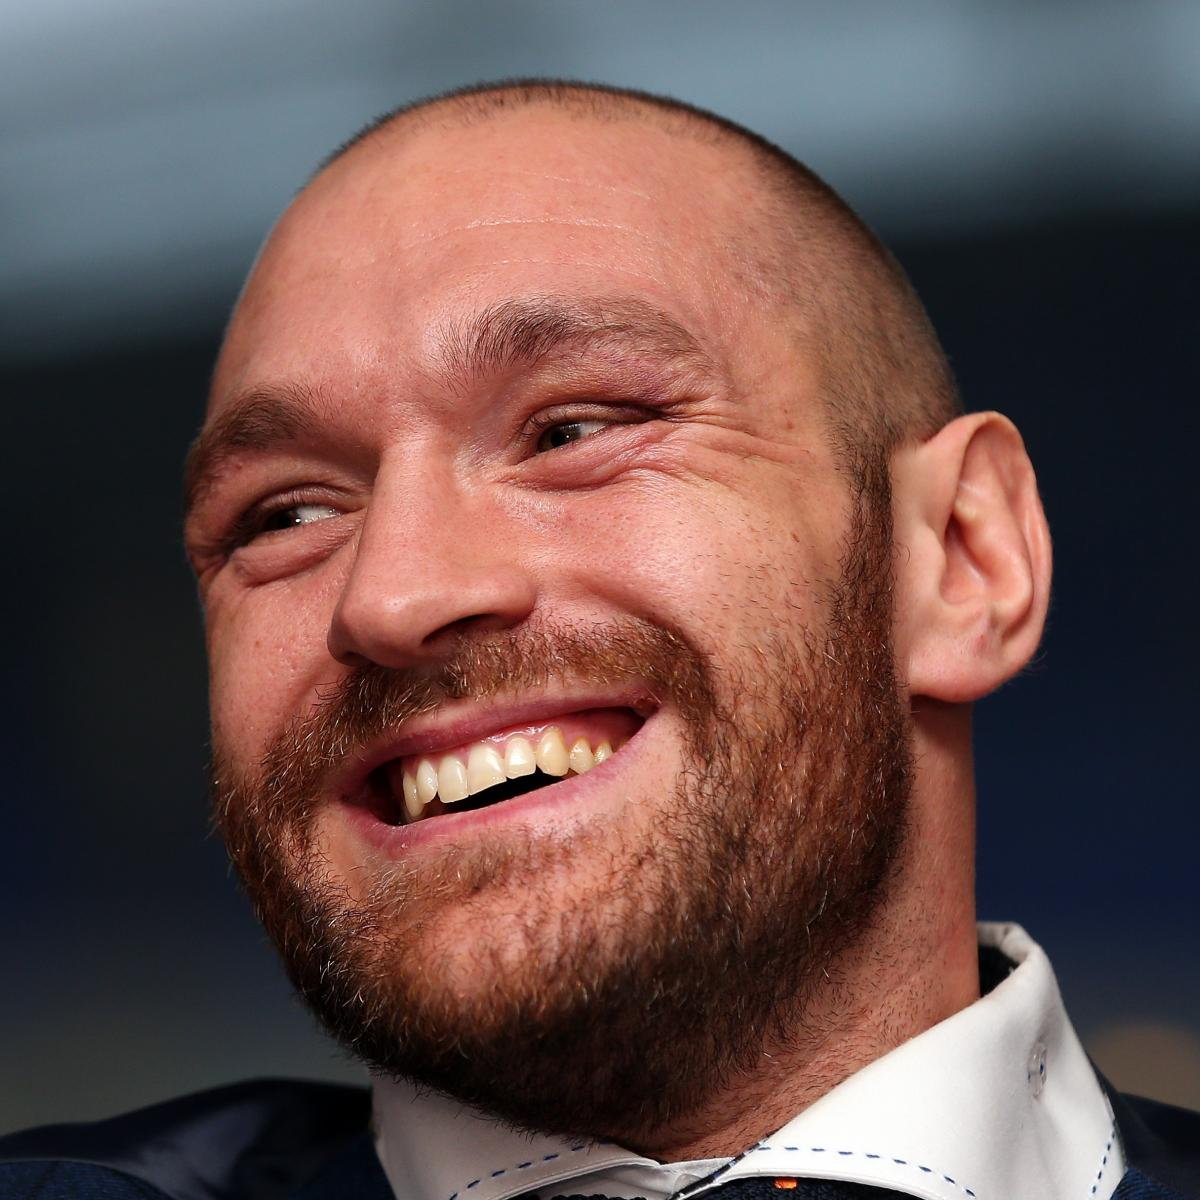 Tyson Fury Comments On Conor McGregor, Holly Holm After